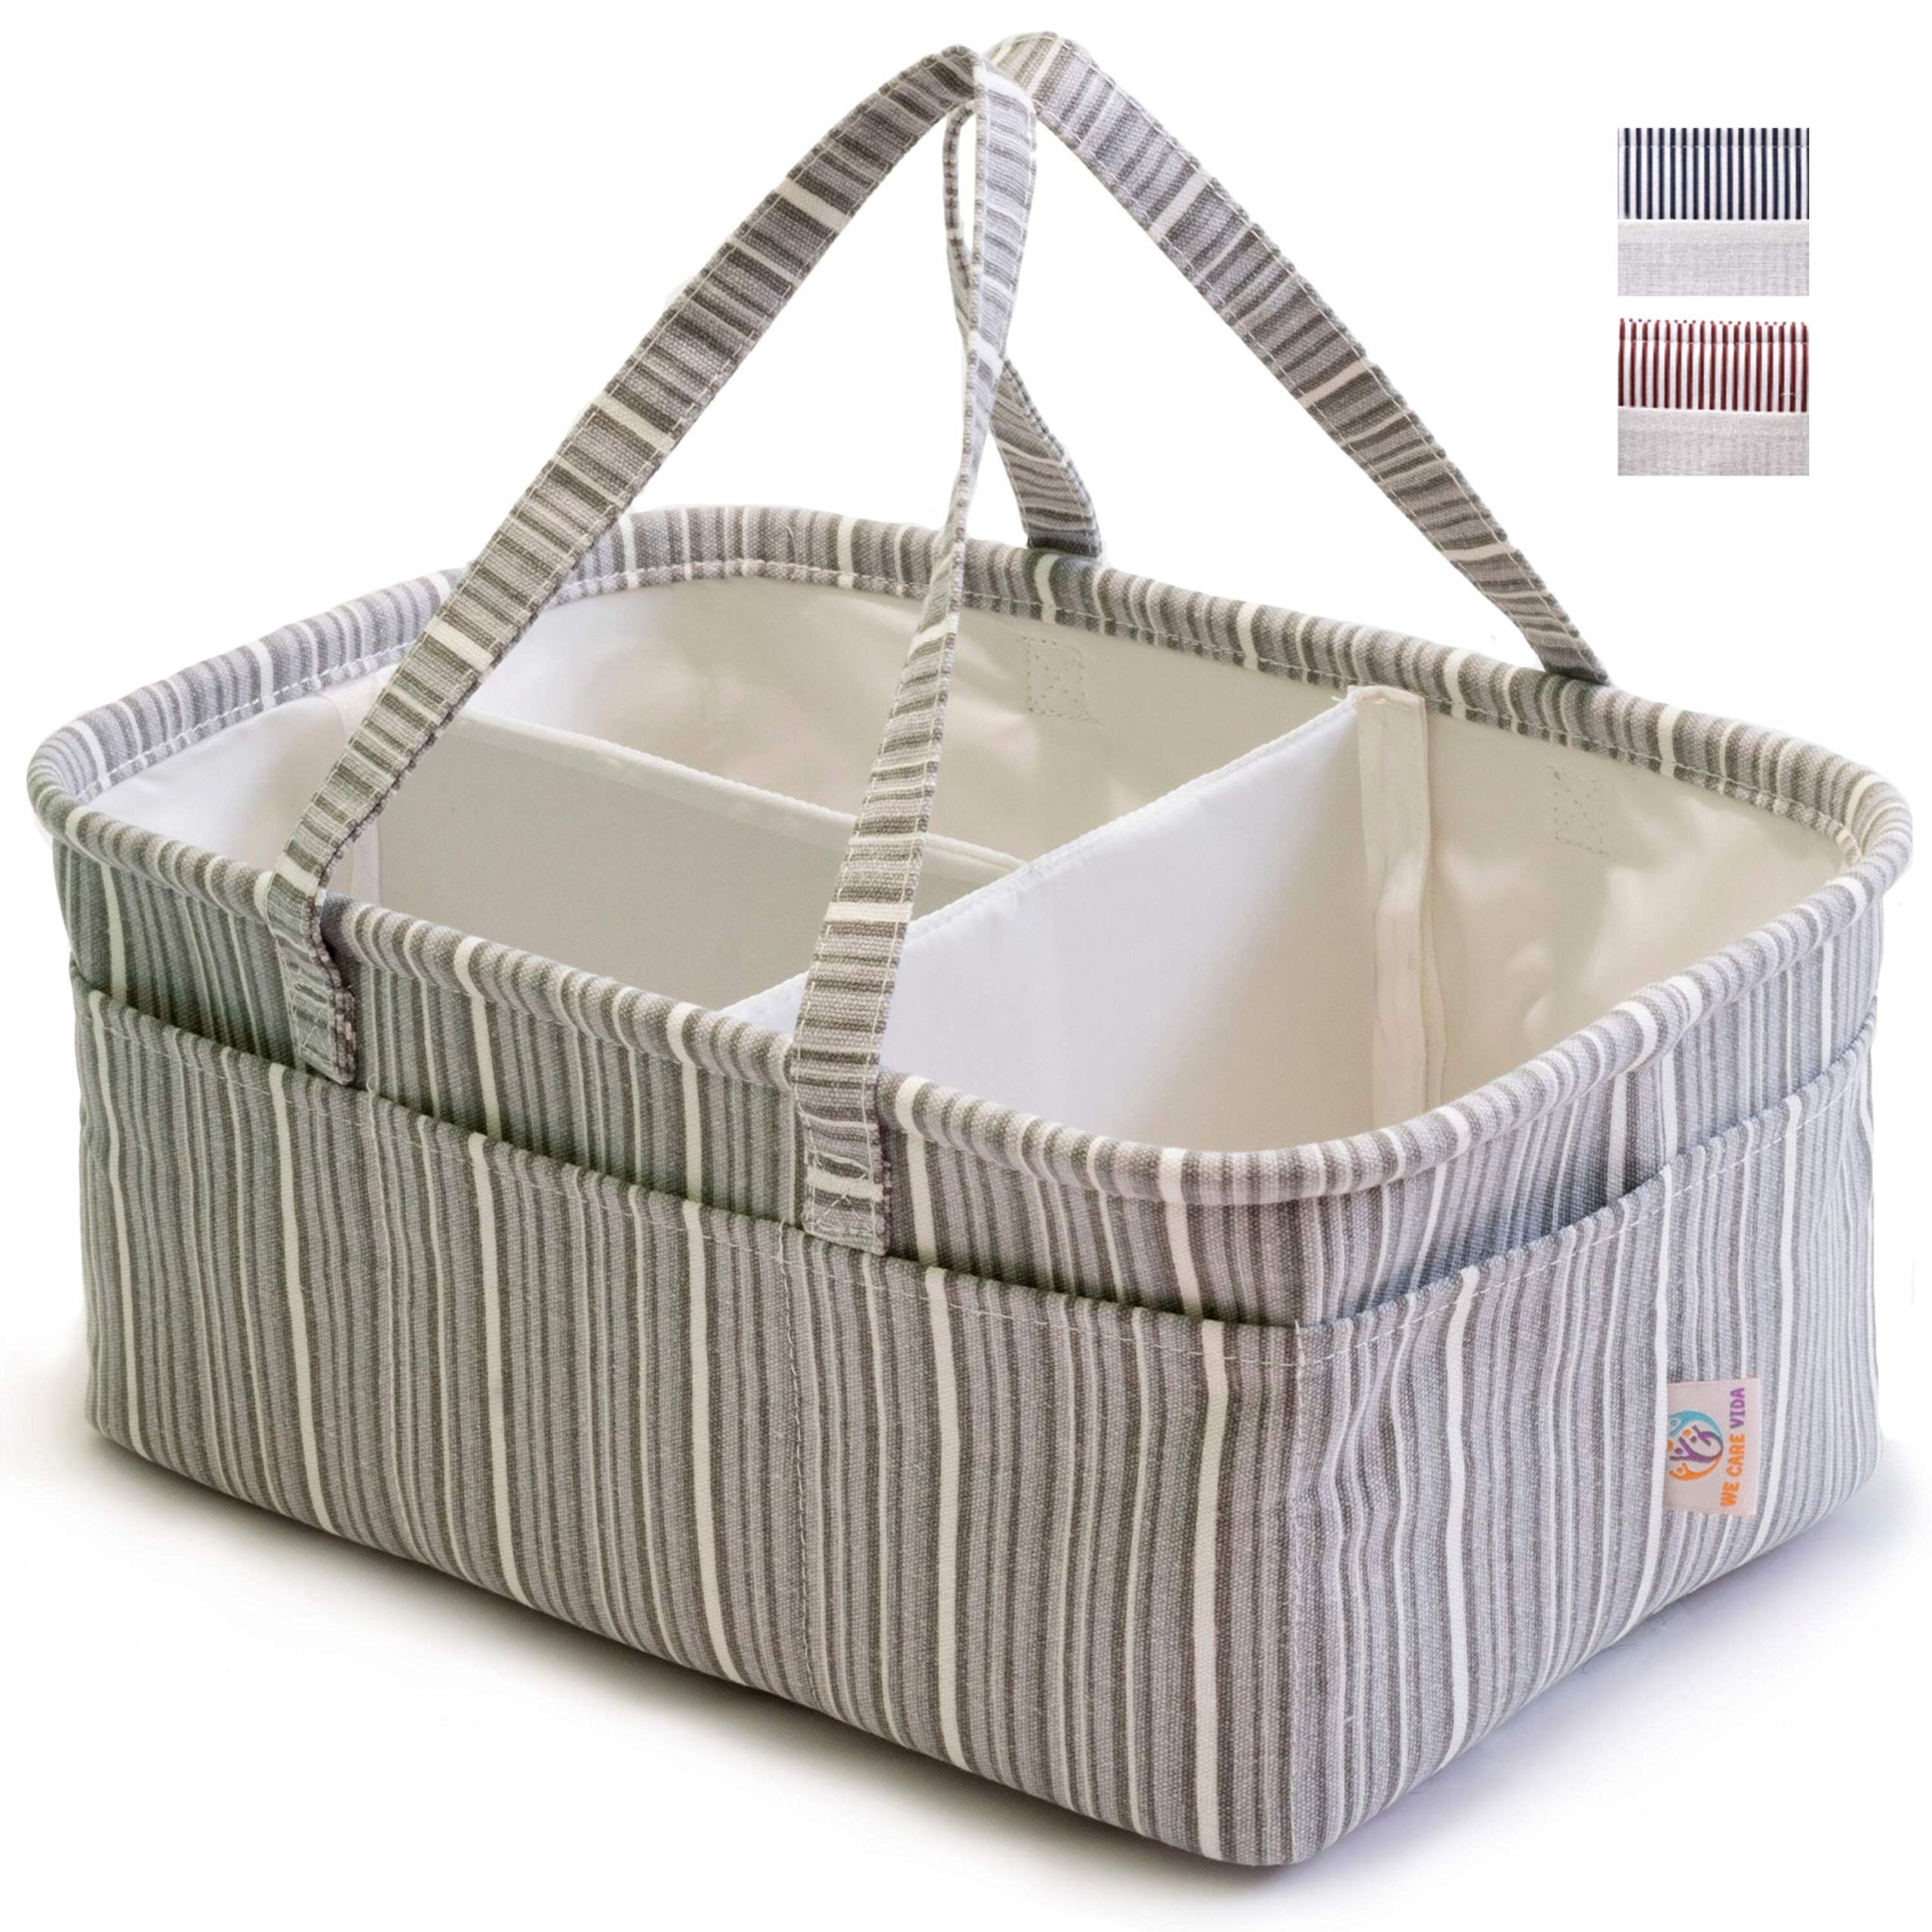 Special Diaper Caddy Organizer Storage Solution for Your Newborn - Organize Everything You Can Imagine - Great Baby Shower Gifts for Boys and Girls (Gray) by We Care Vida